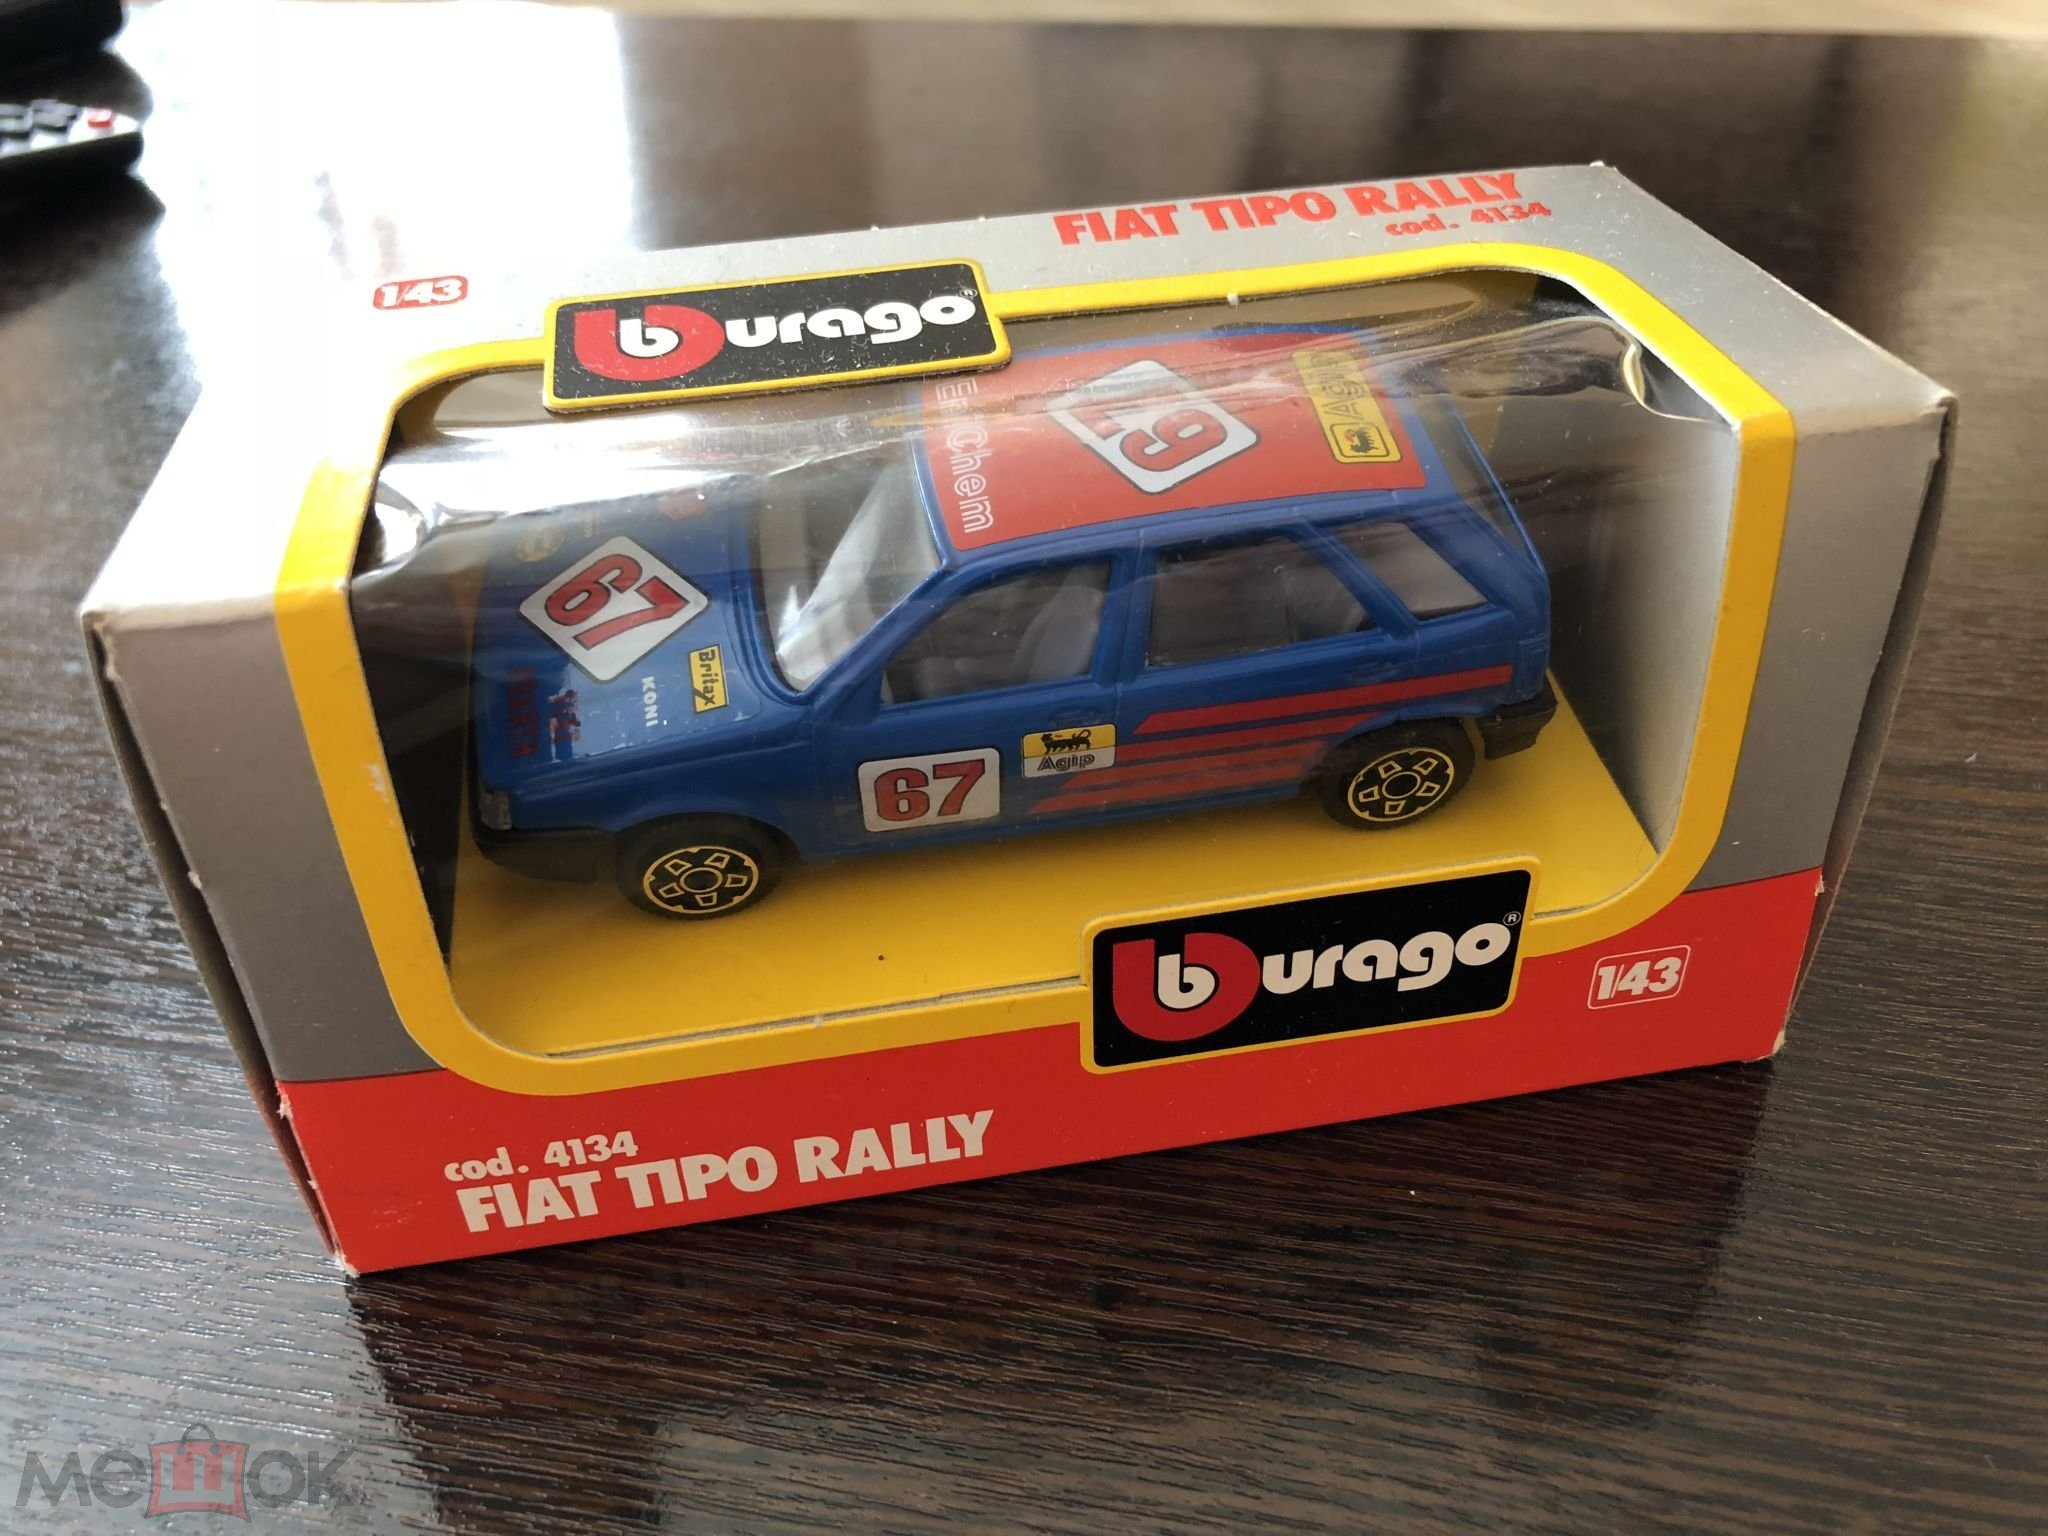 Fiat Tipo Rally Cod 4134 1 43 Made In Italy Burago